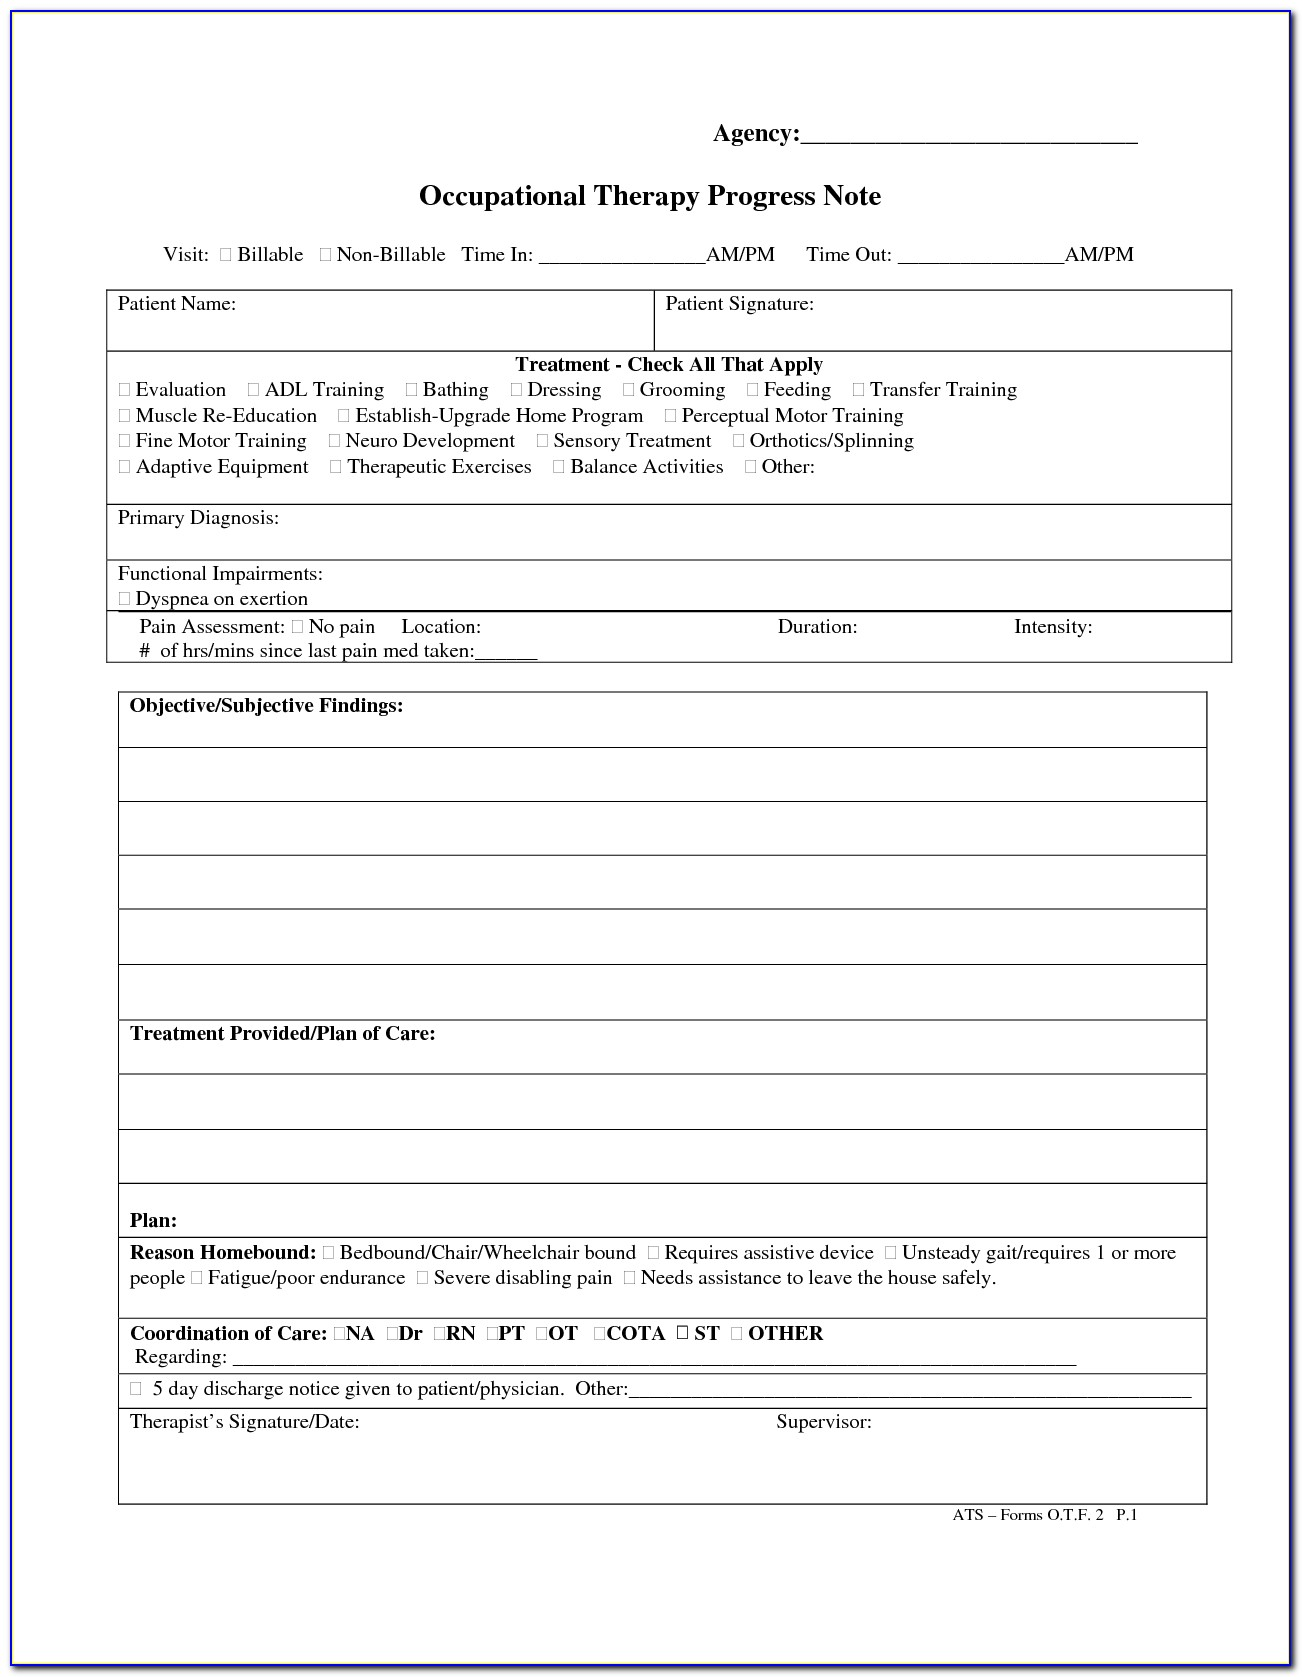 Occupational Therapy Progress Note Template